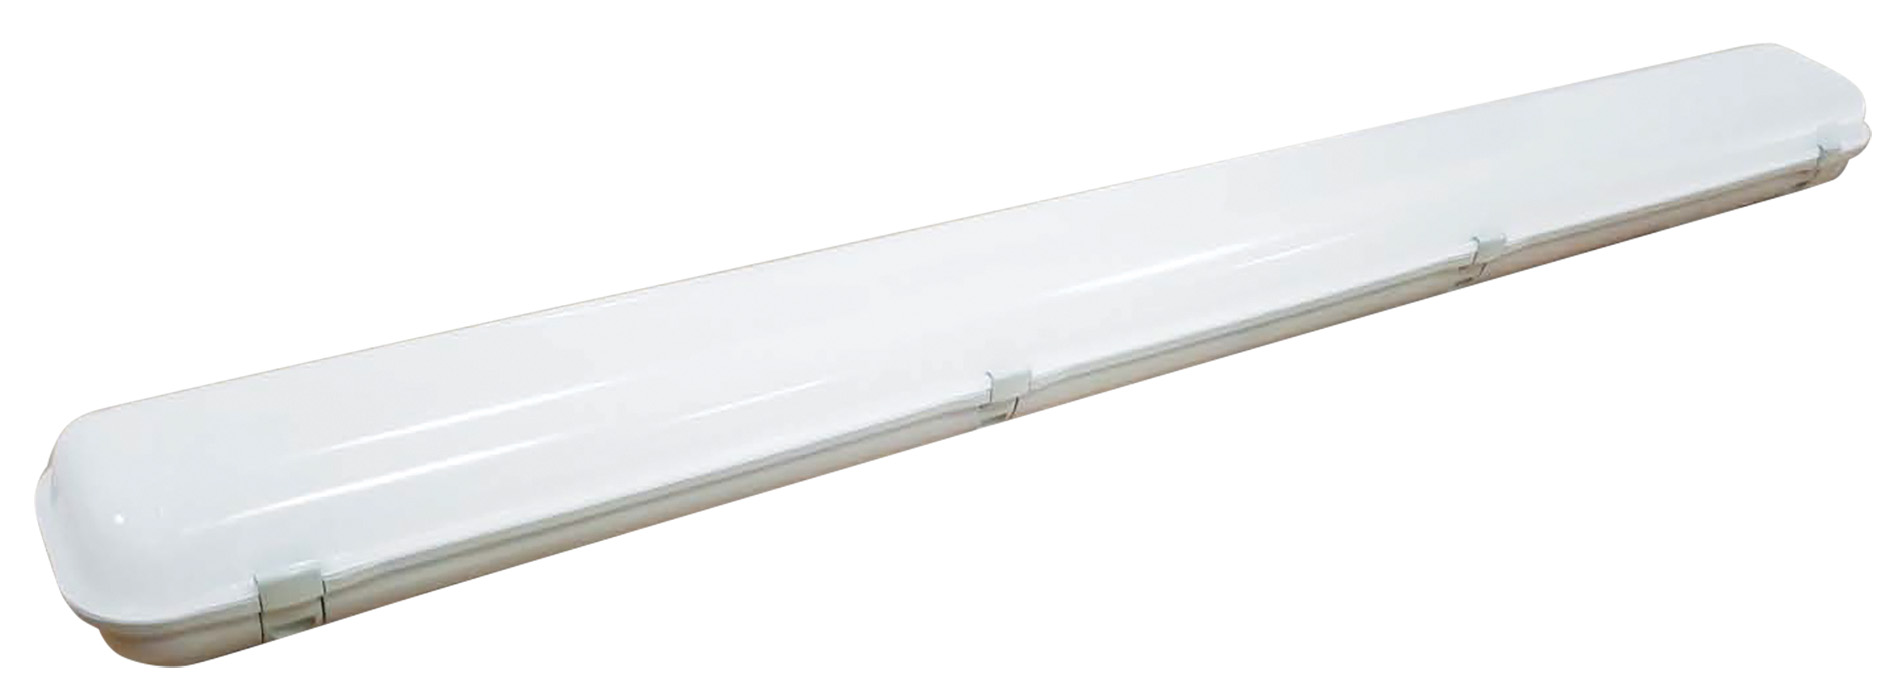 ORR236-1274EO3S 36.5W LED Batten Light